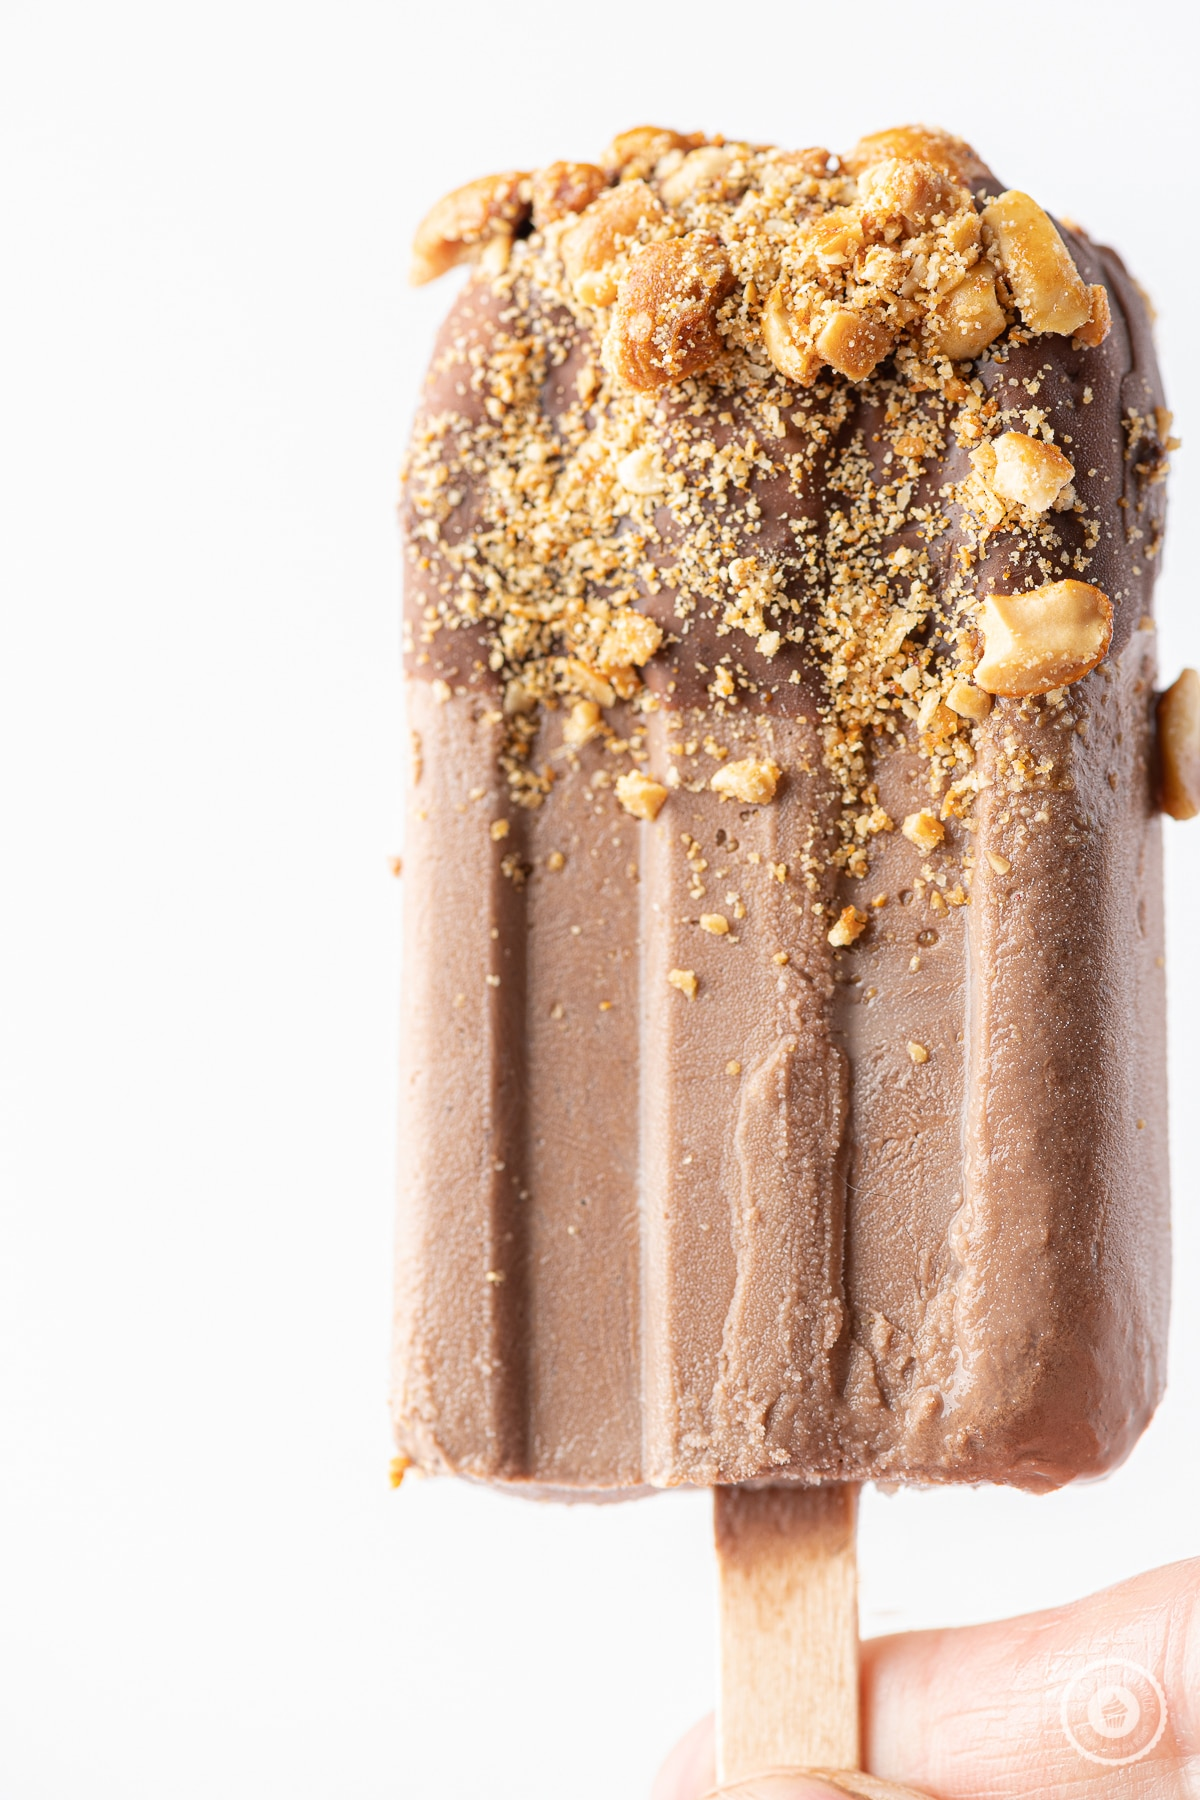 A single frozen chocolate popsicle with chocolate coating and crushed peanuts against a bright white background